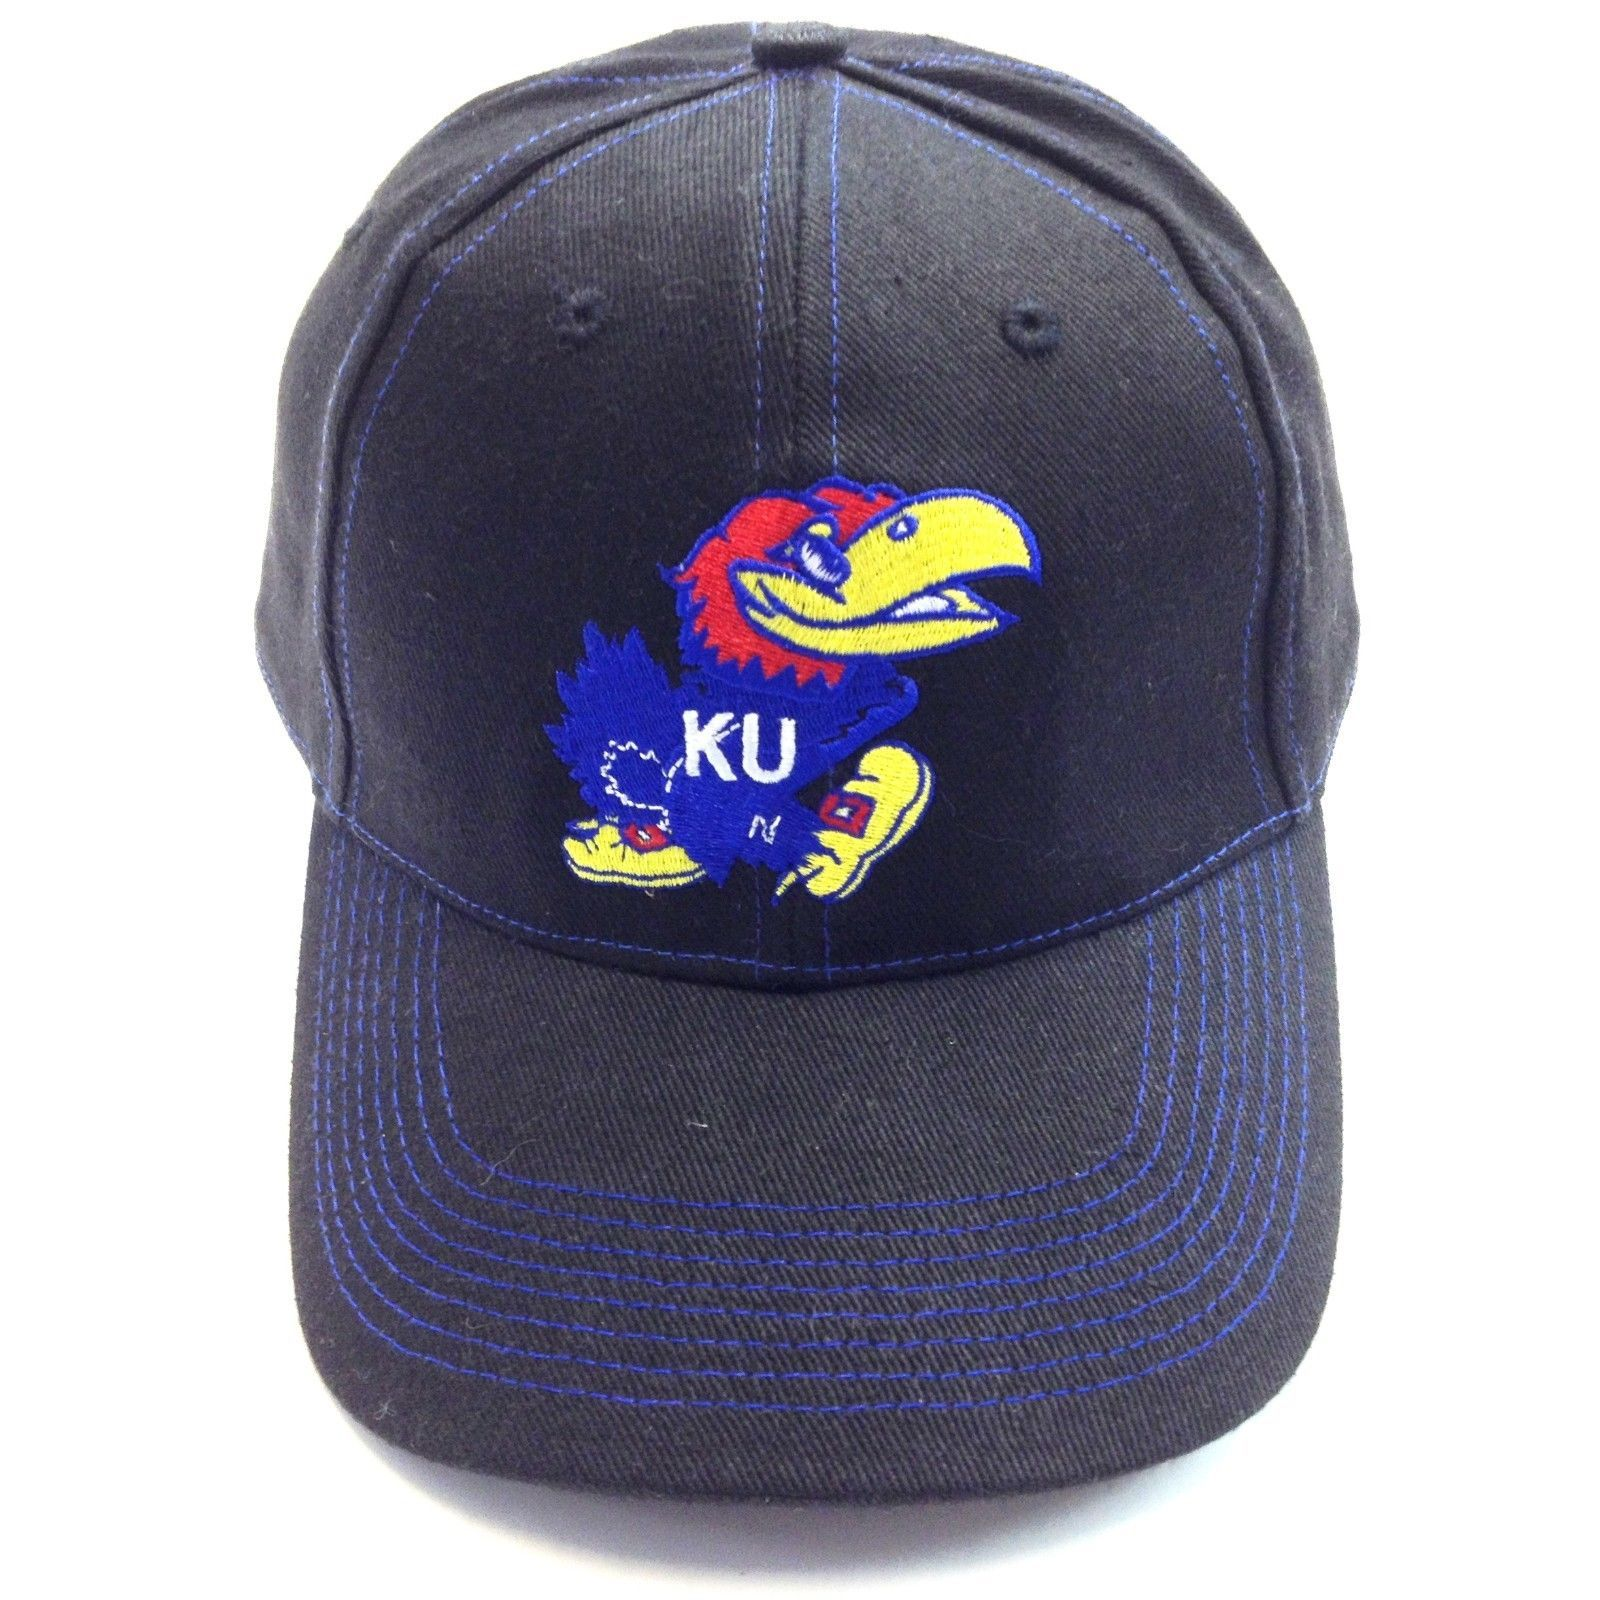 Primary image for KU JAYHAWKS BASEBALL CAP